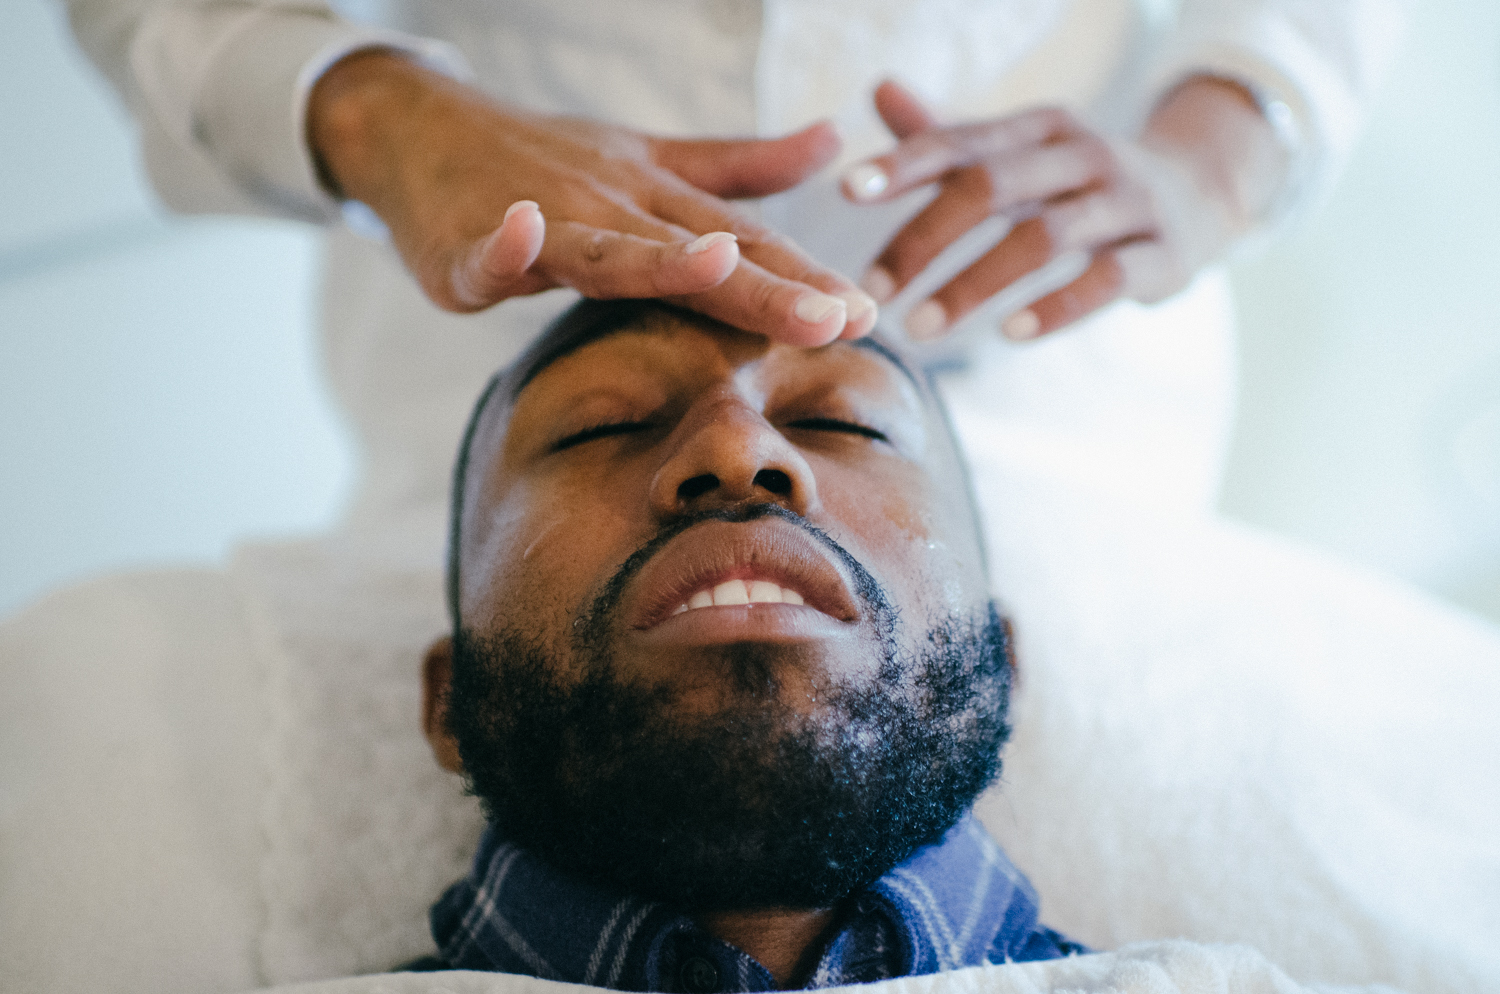 Images of Black man getting facial skin treatment